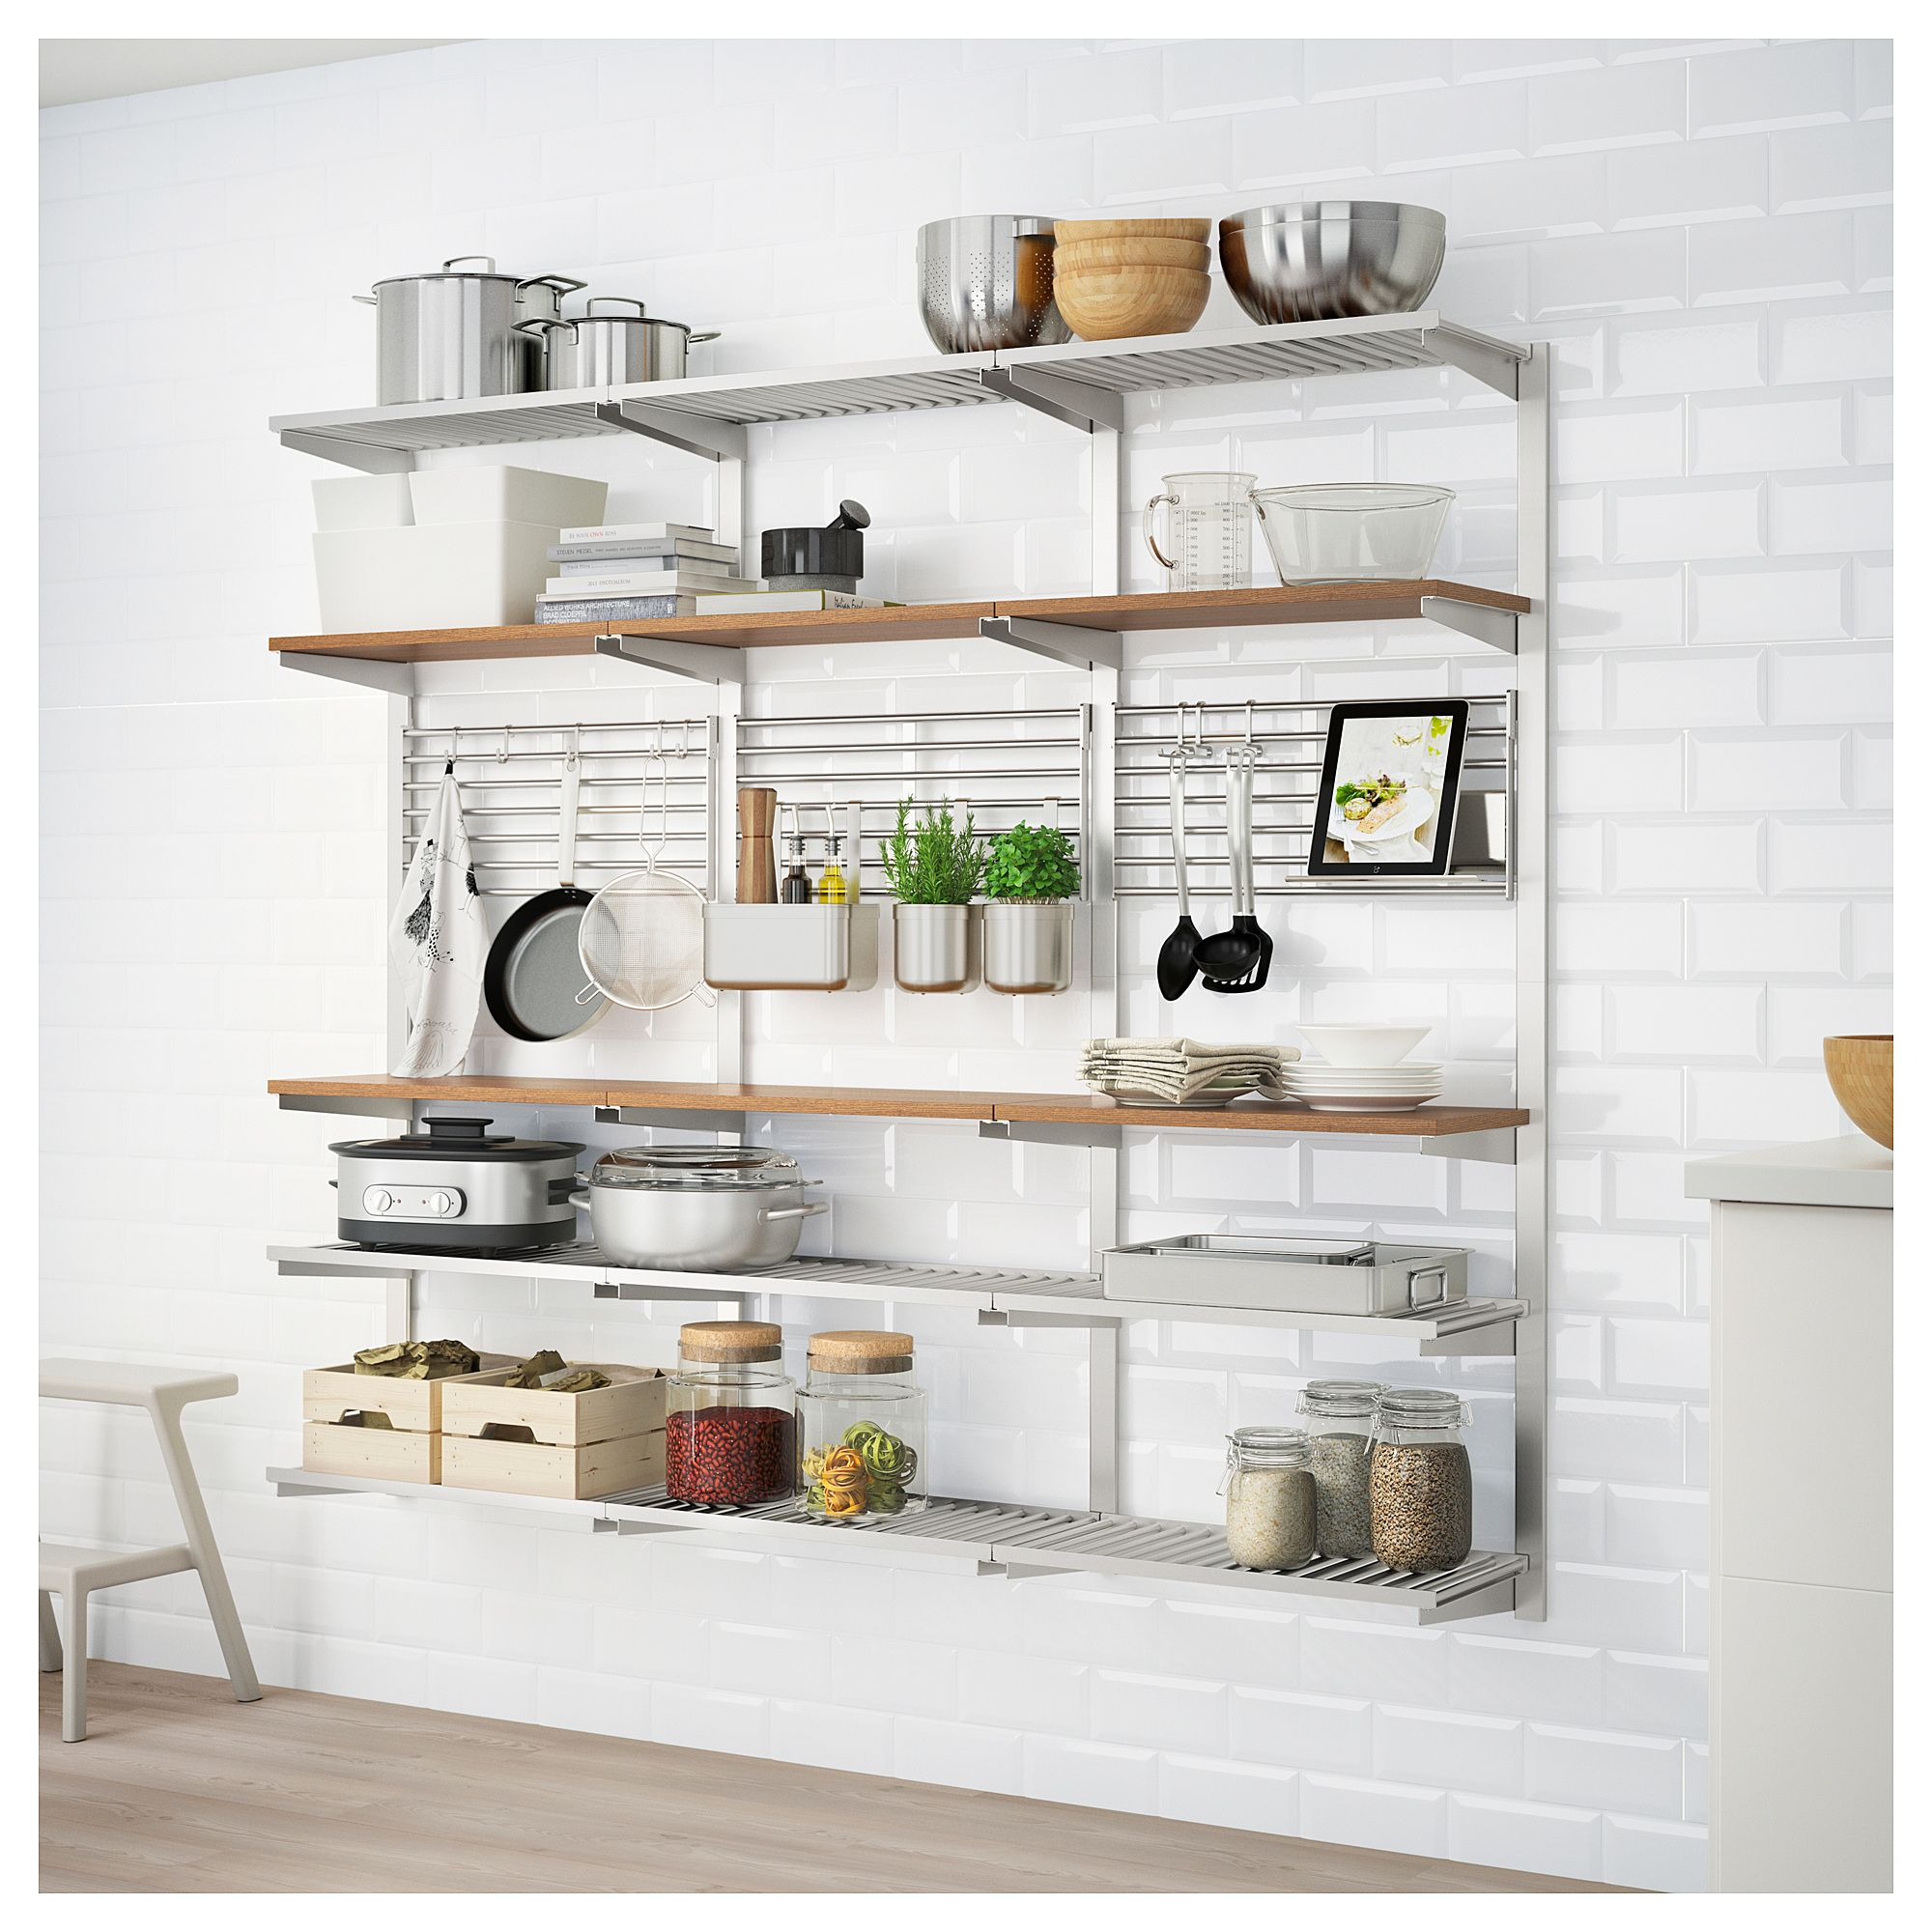 IKEA KUNGSFORS Suspension rail with shelf wll grid stainless steel